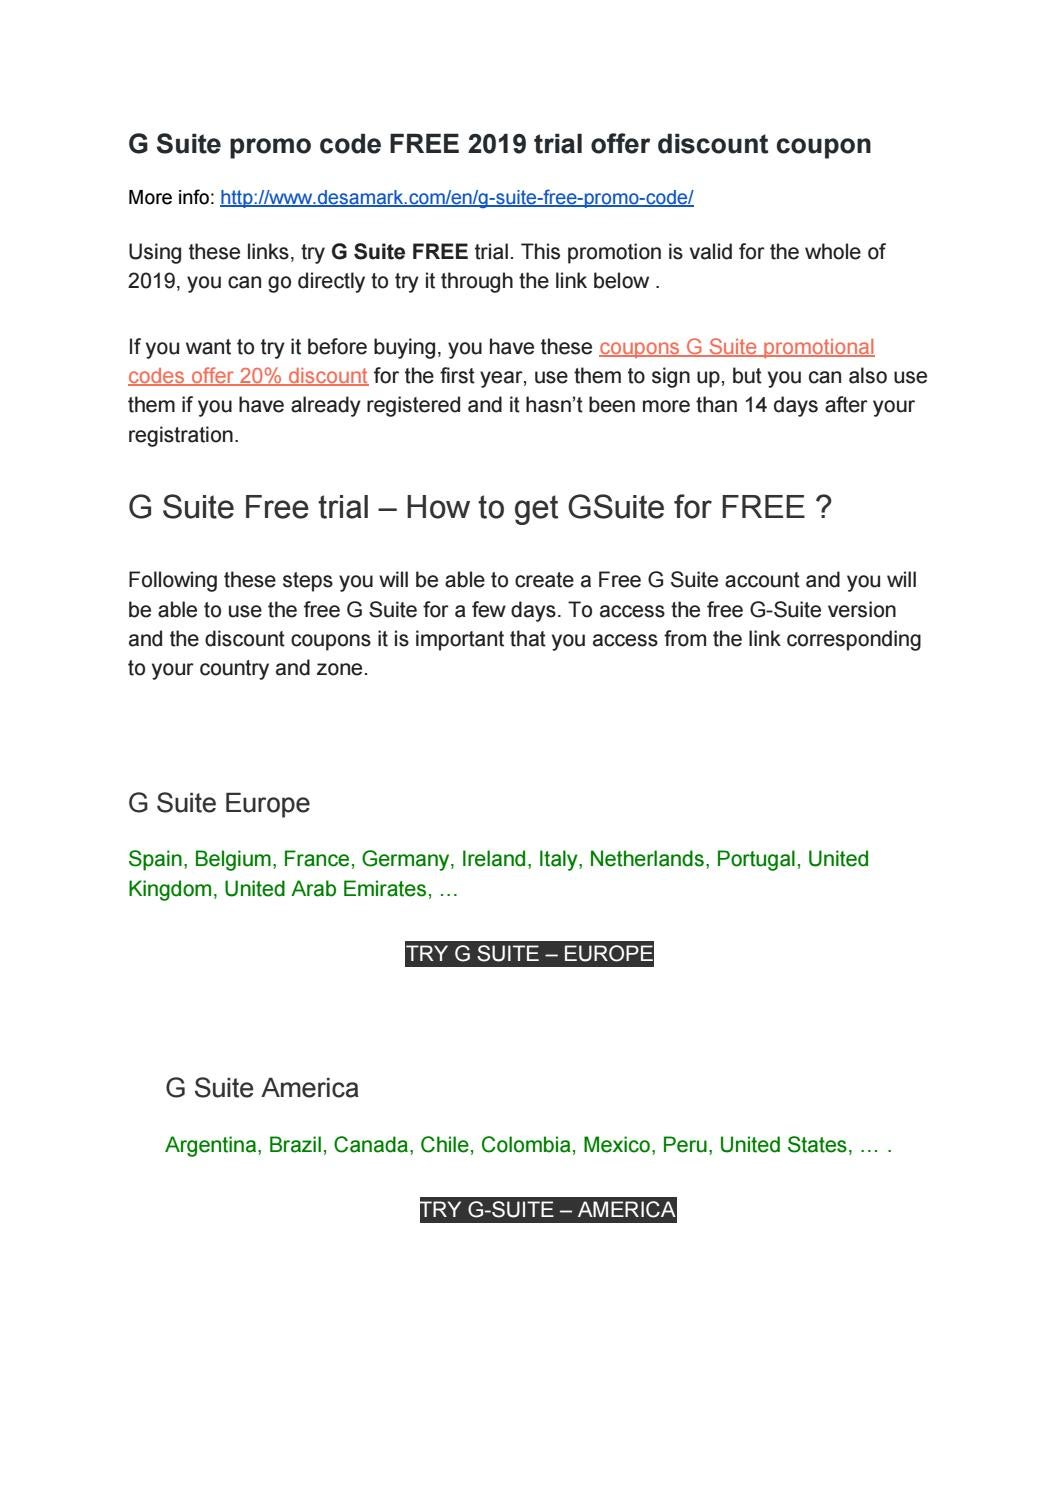 G Suite Promo Code Free 2020 Trial Offer Discount Coupon By Vicen Martinez Issuu